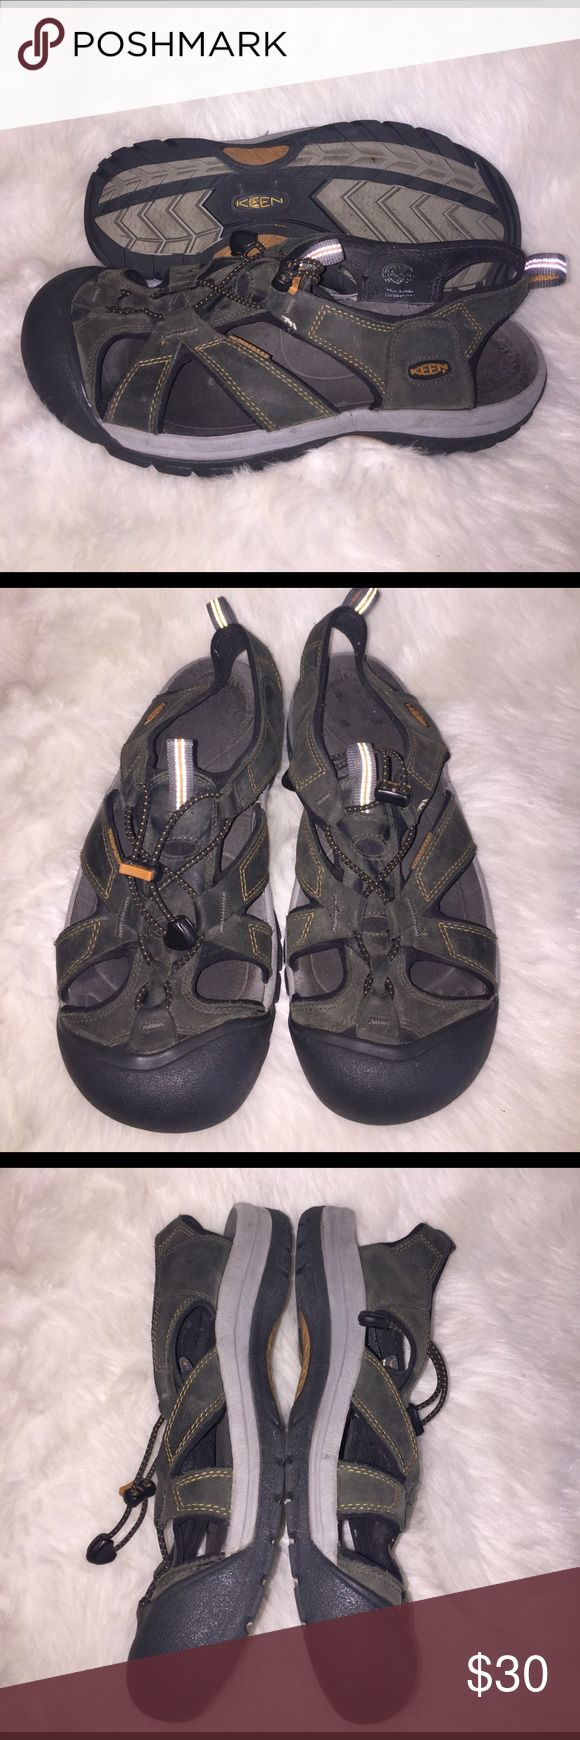 Sandals or shoes for hiking - Men S Keen Hiking Sandals Men S Keen Hiking Sandals Waterproof Size 10 5 Great Used